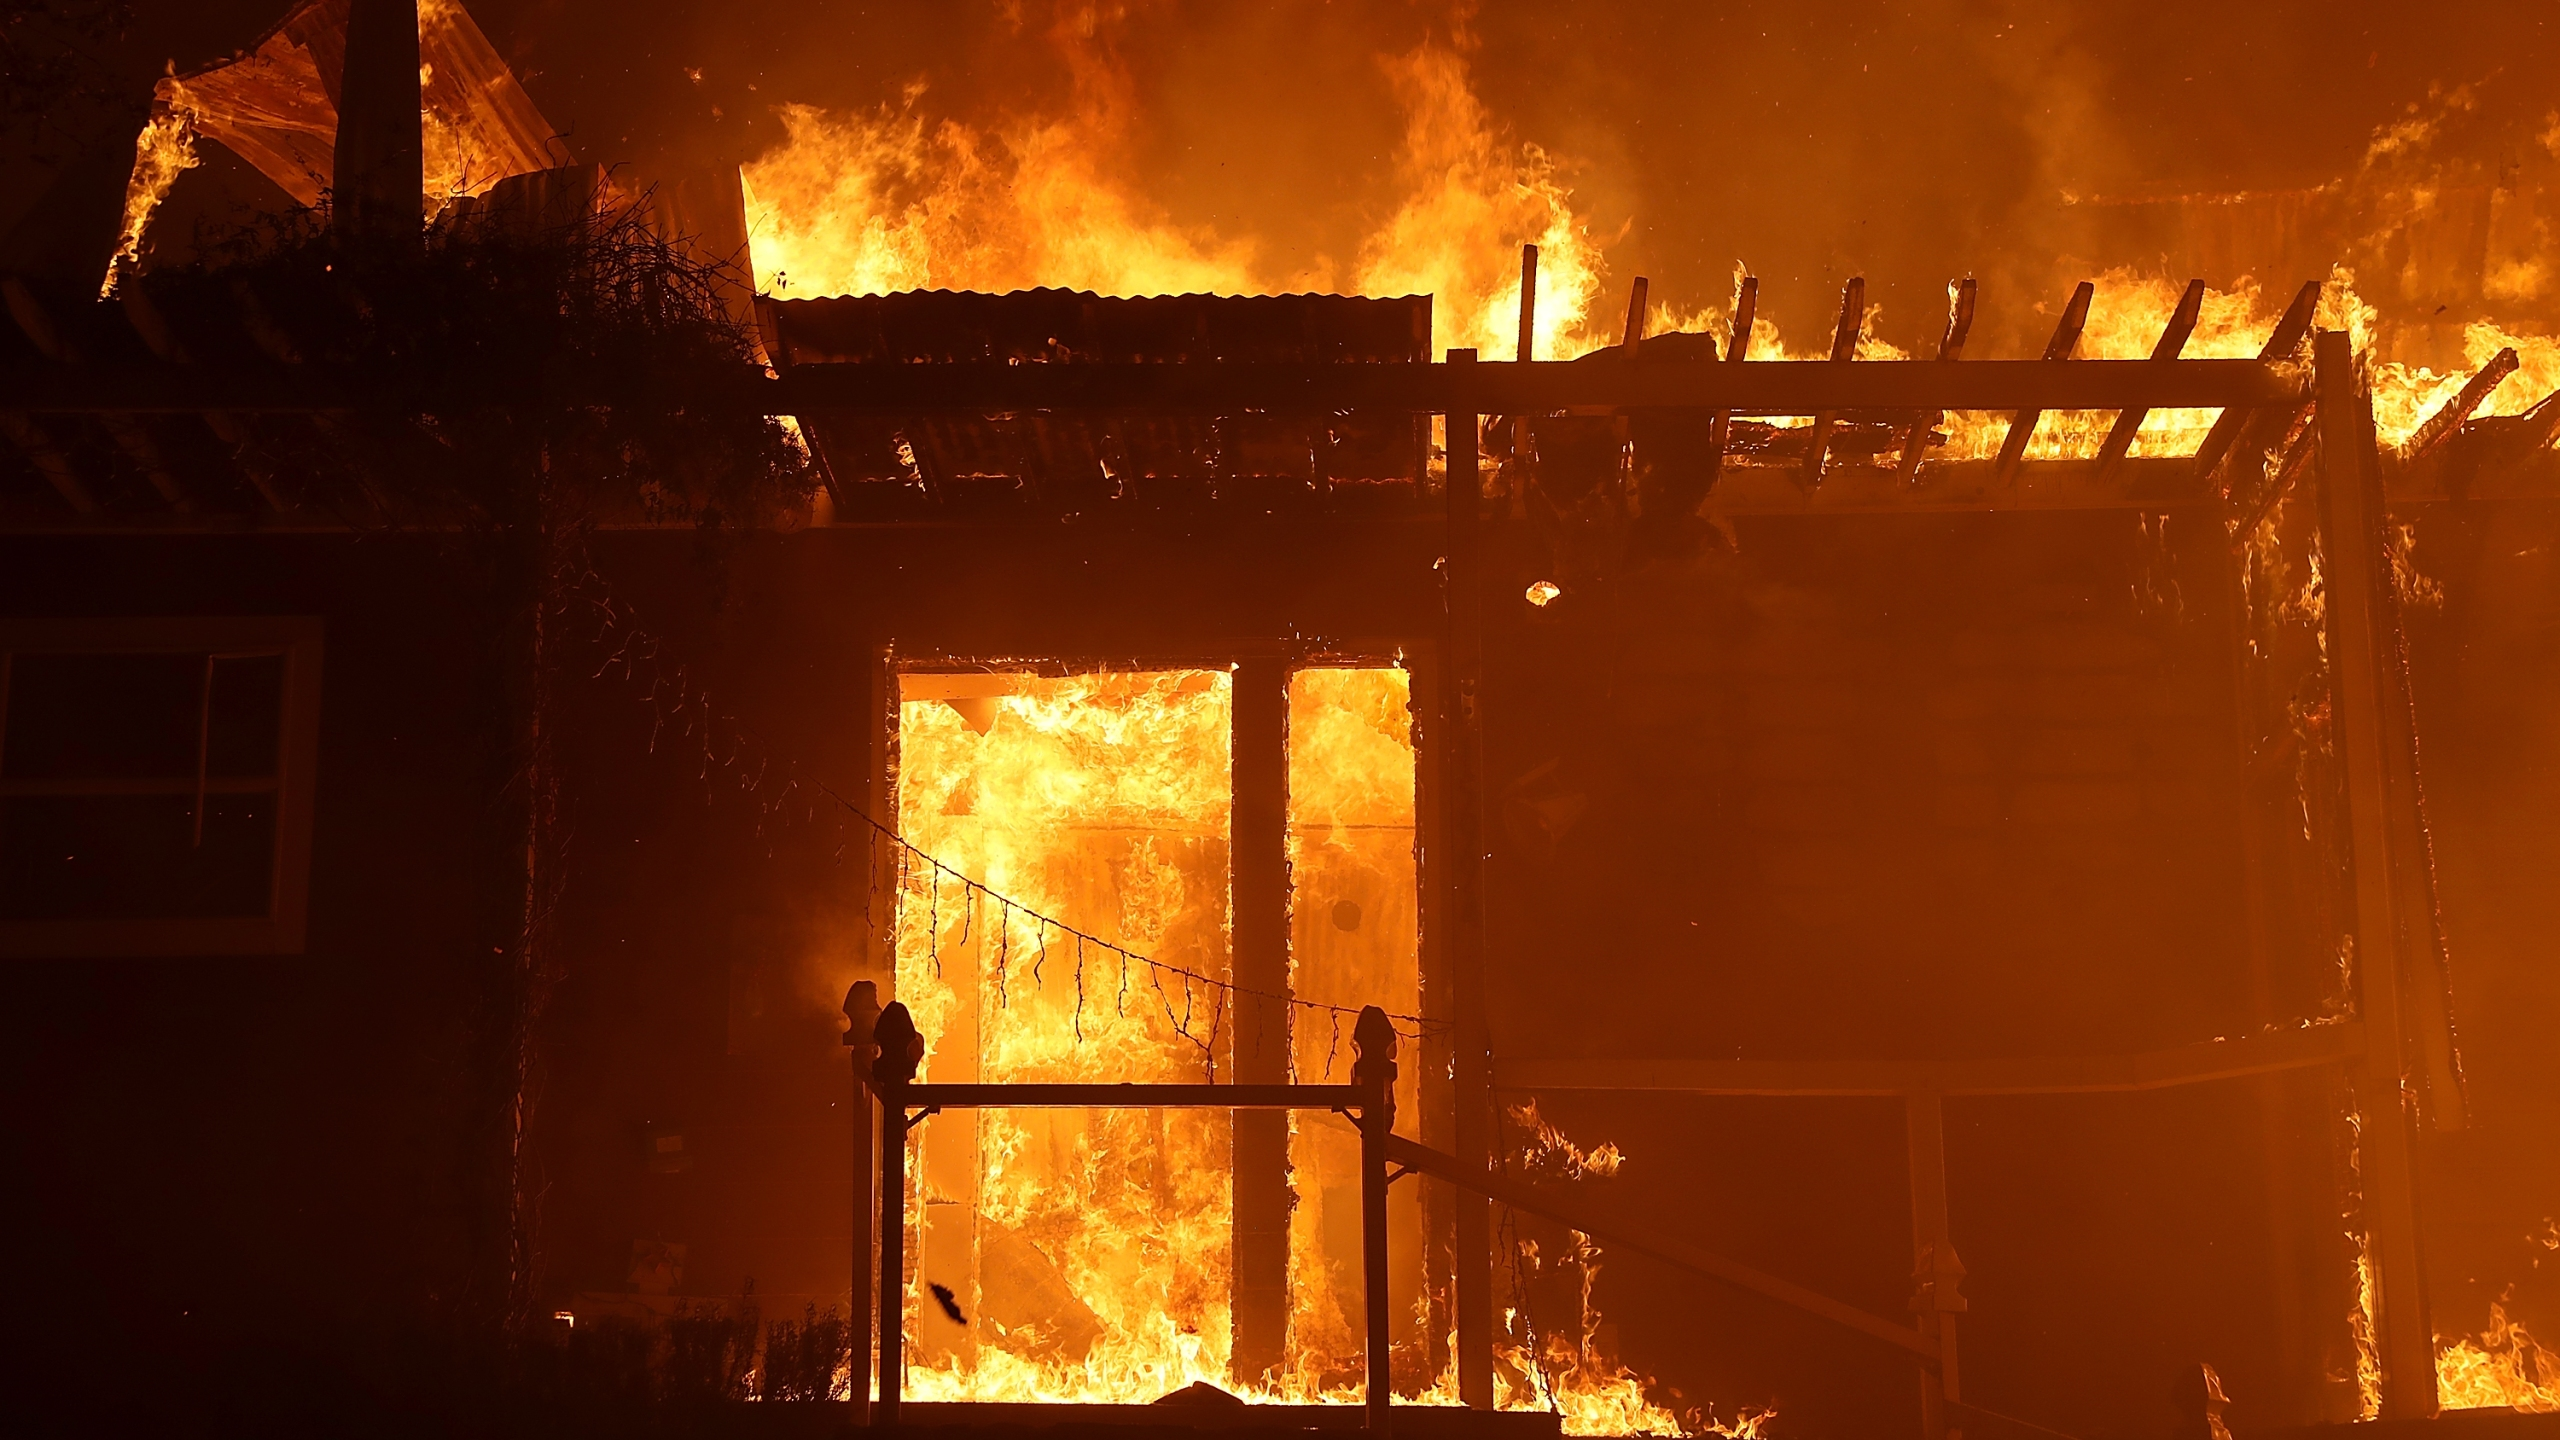 A home is consumed by fire during the Thomas fire on Dec. 7, 2017, in Ojai. (Credit: Justin Sullivan/Getty Images)